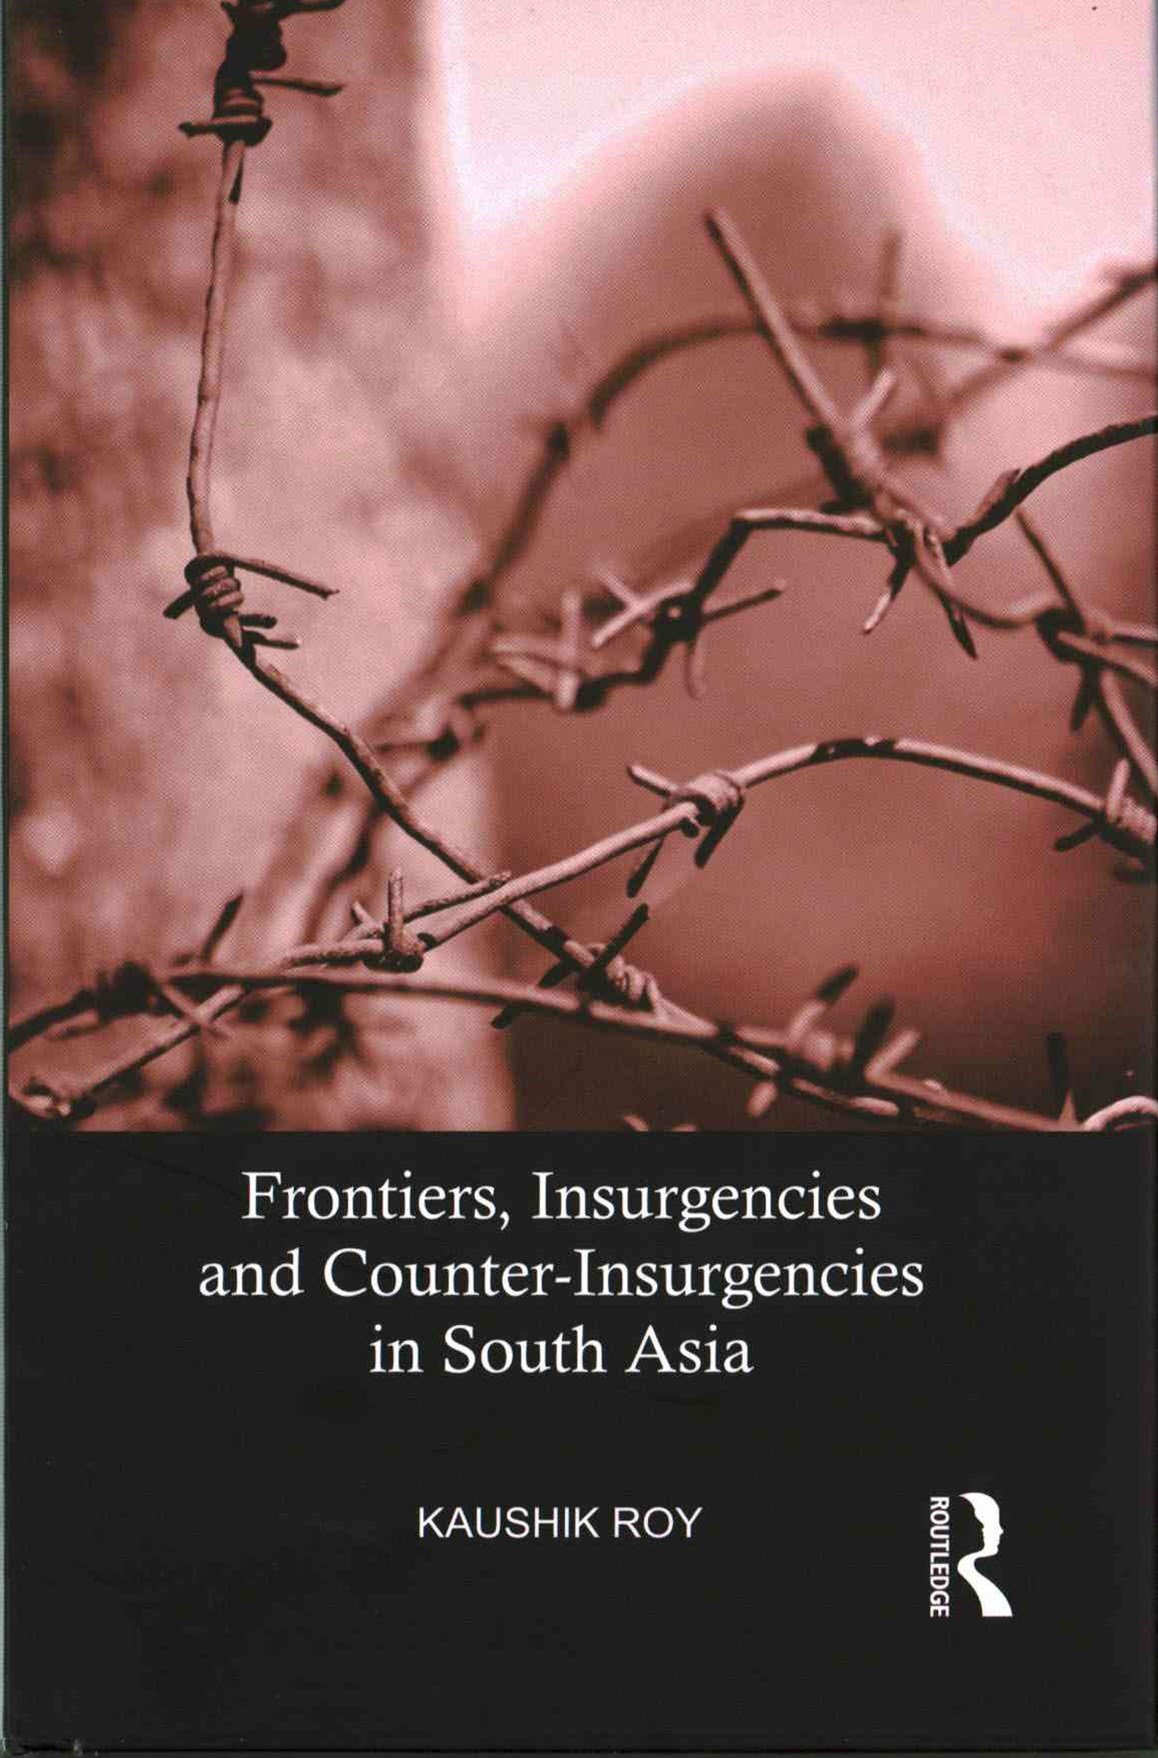 Frontiers, Insurgencies and Counter-Insurgencies in South Asia, 1820-2014